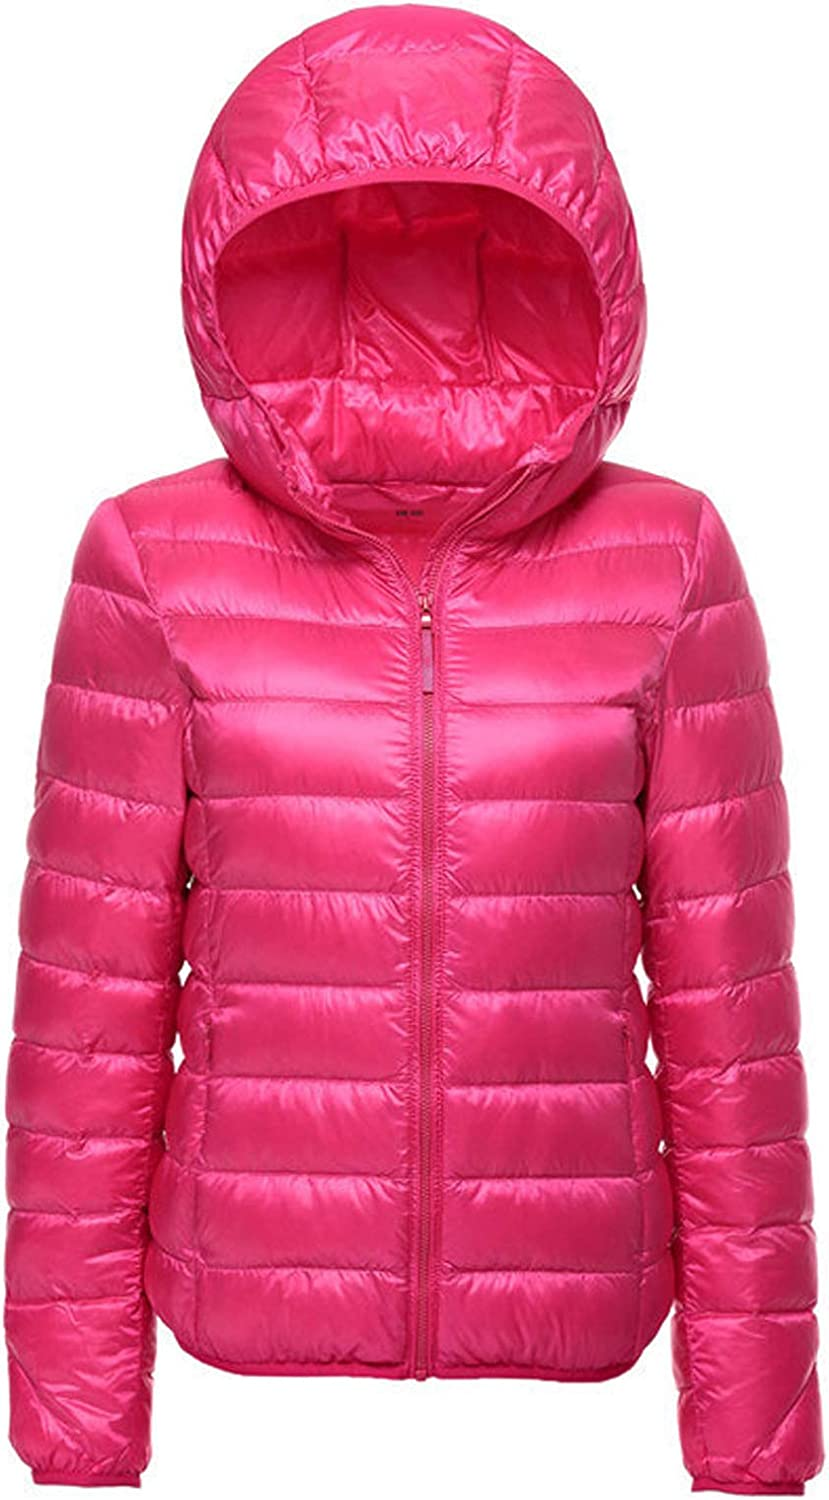 Flygo Women's Packable Lightweight Water-Resistant Hooded Quilted Down Puffer Jacket